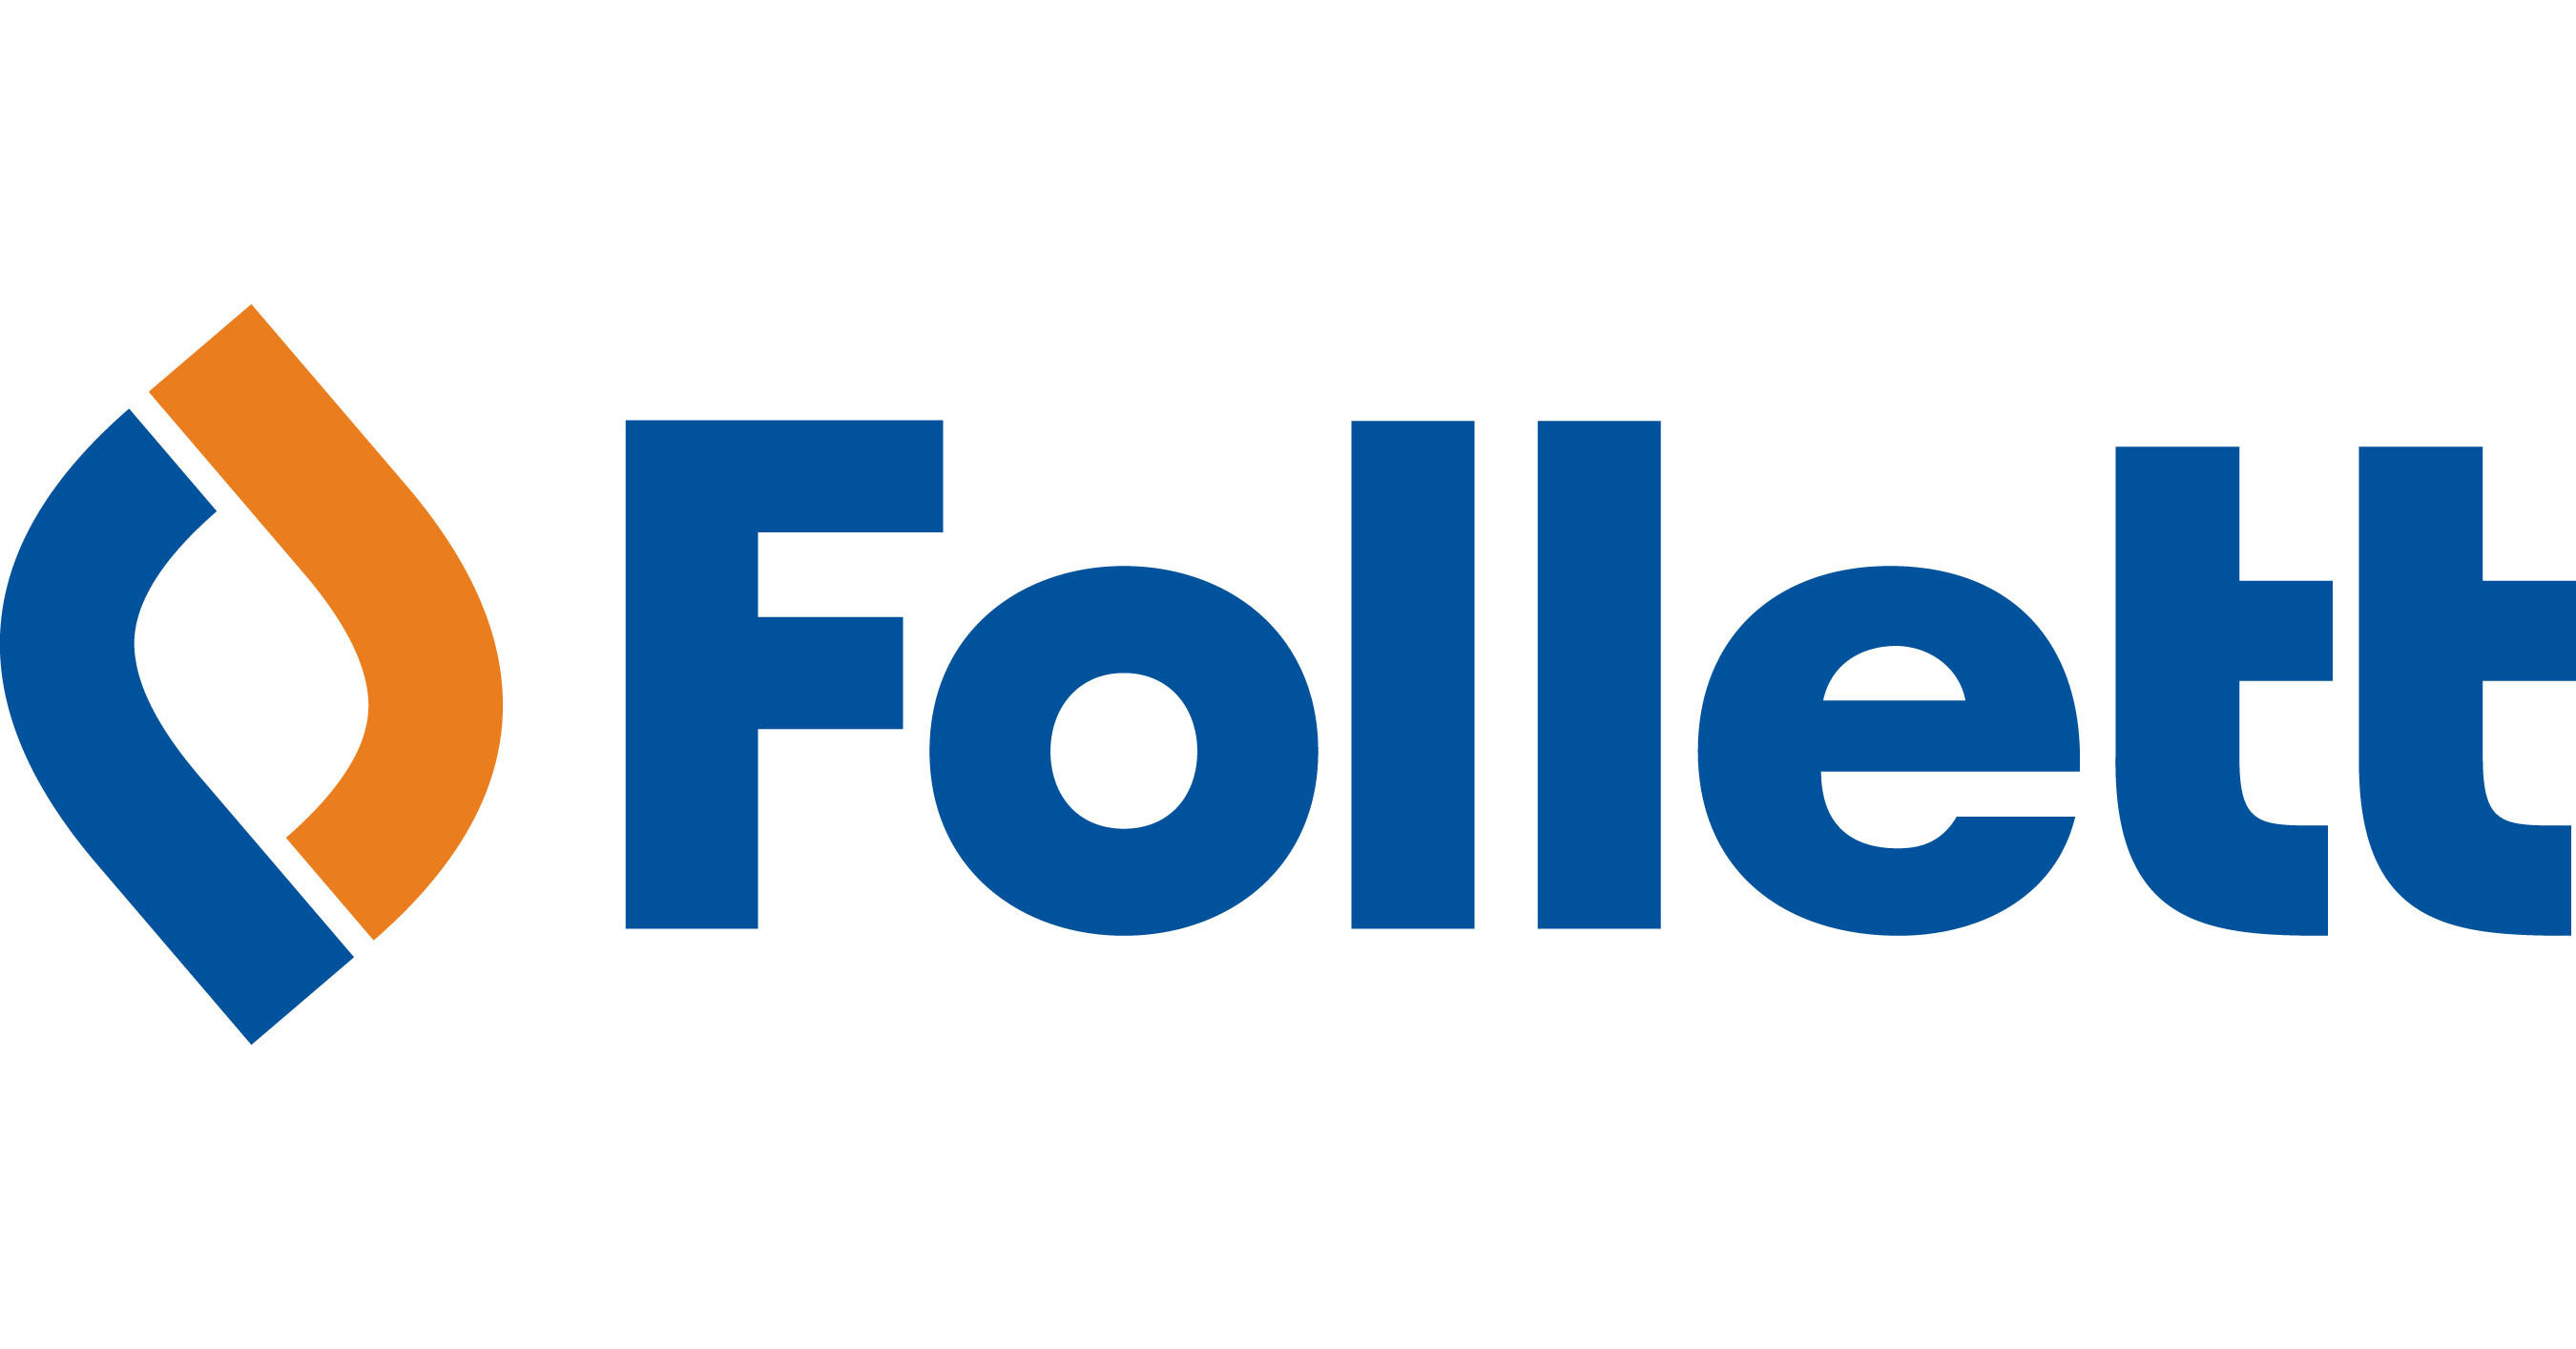 Follett Launches All-Campus Model of Groundbreaking Course Materials  Program Aimed at Driving Student Affordability, Accessibility and Retention